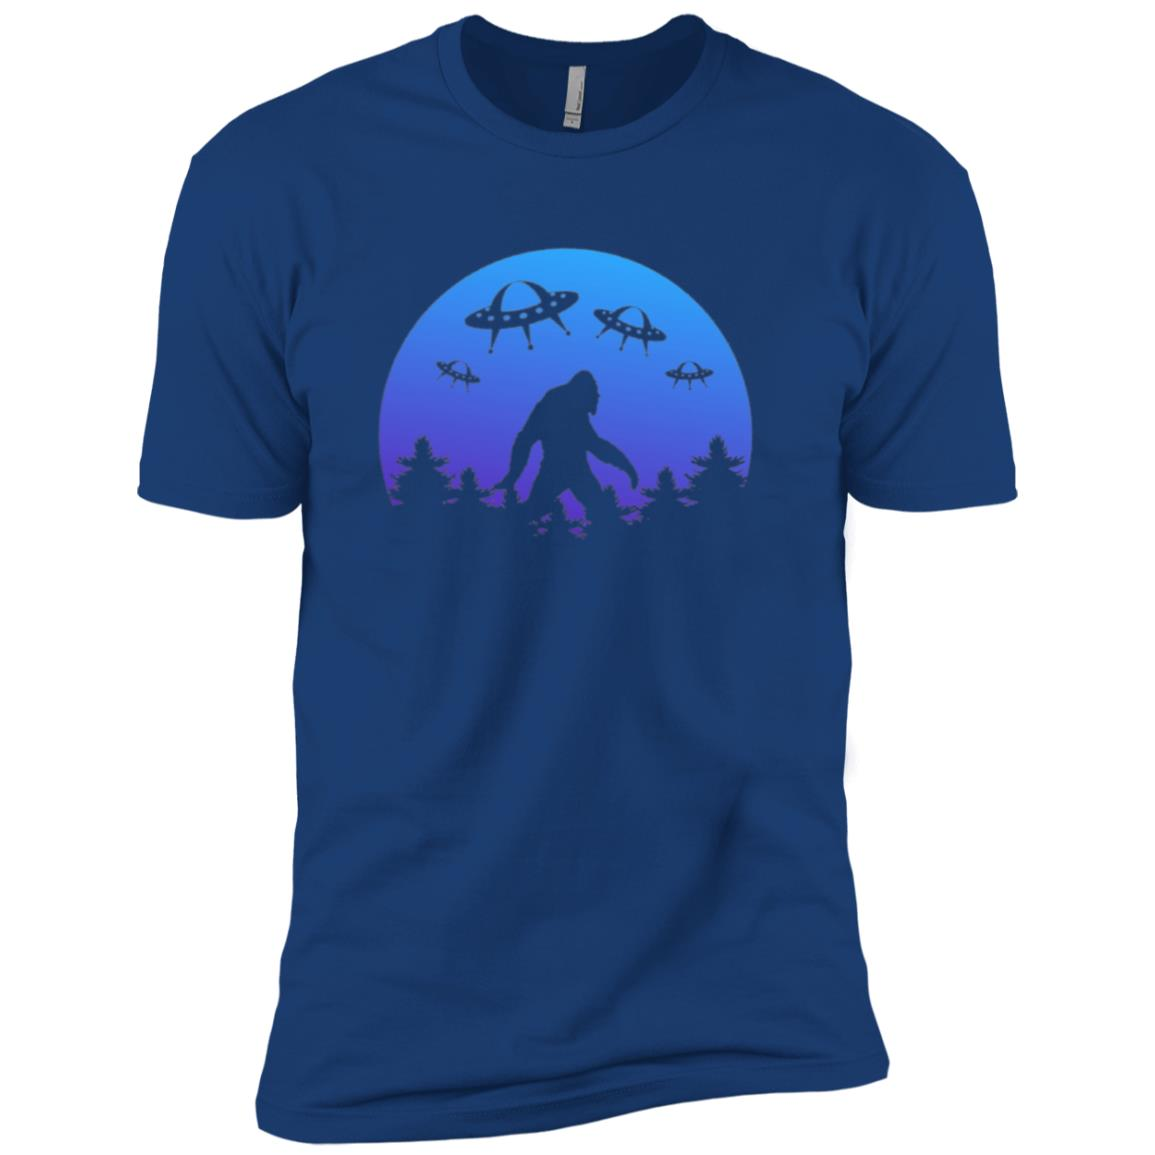 Bigfoot Abduction Funny UFO Alien Men Short Sleeve T-Shirt